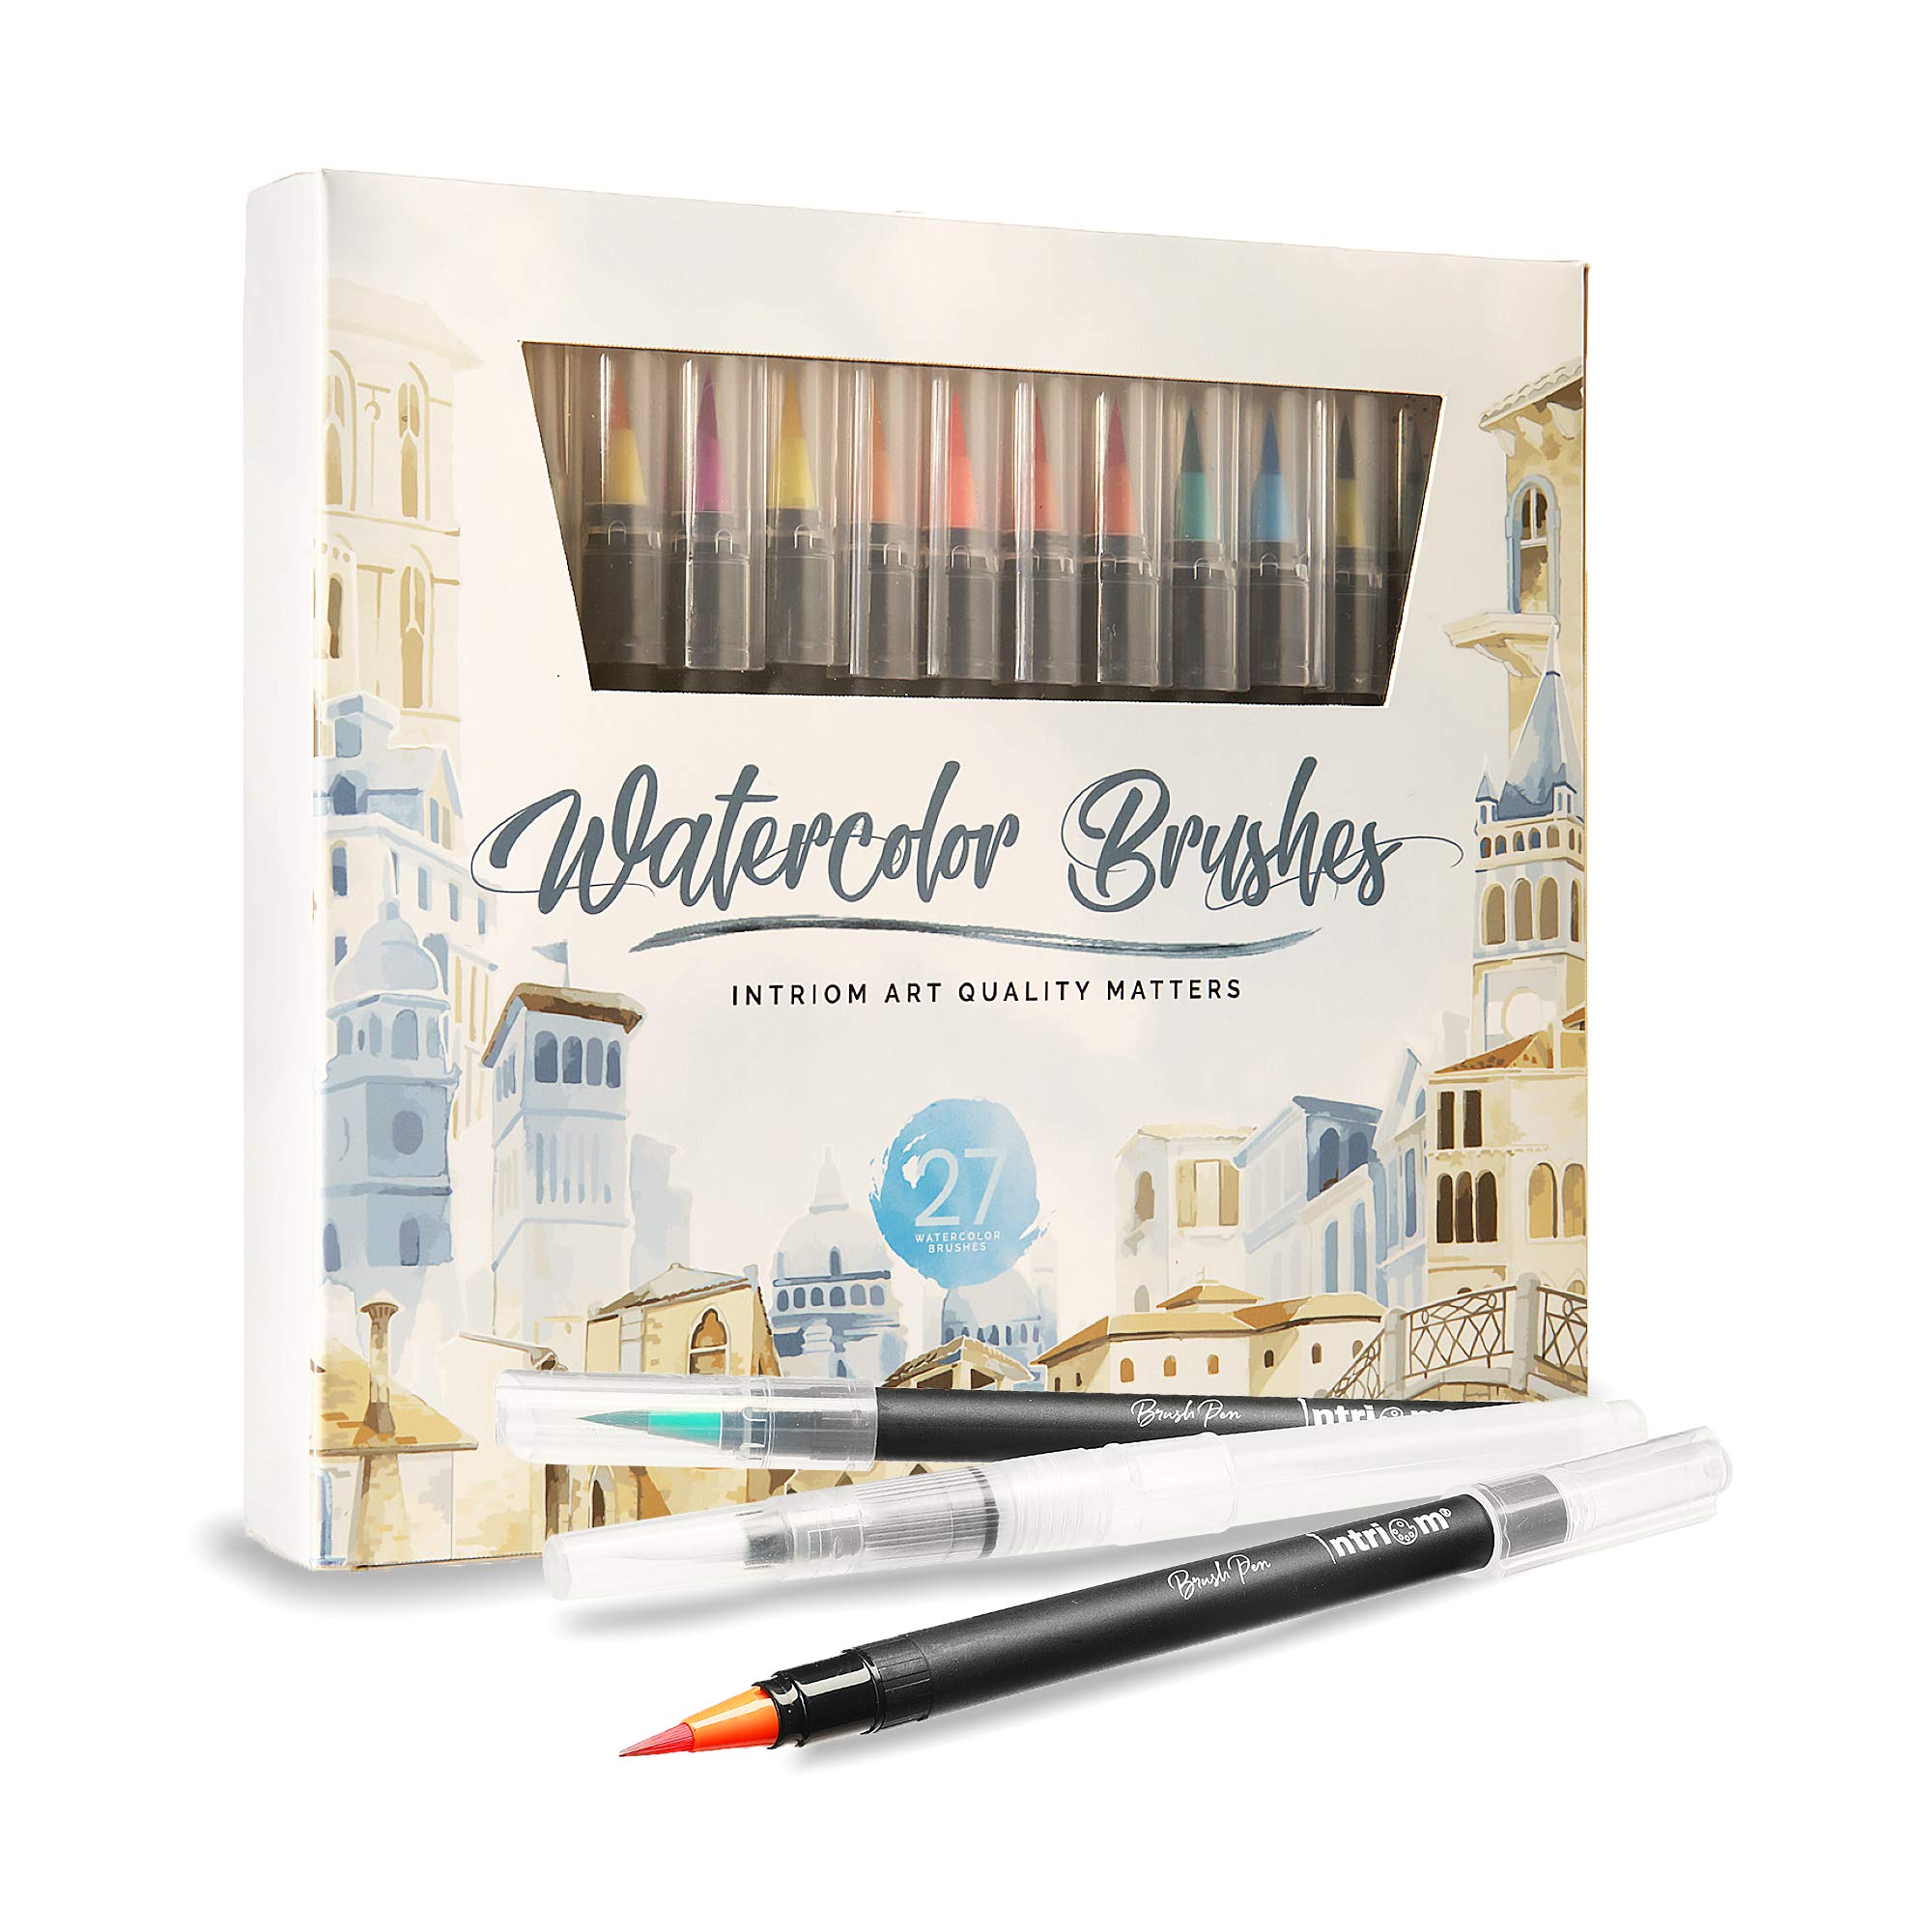 Watercolor Brush Pens Assorted Set | Colored + 3 Watercolor Brush Pens +8 Watercolor Paper | Complete Art Supply Coloring & Inking Markers W/Real Brush Tips & Carrying Case | Nontoxic (27) by Intriom